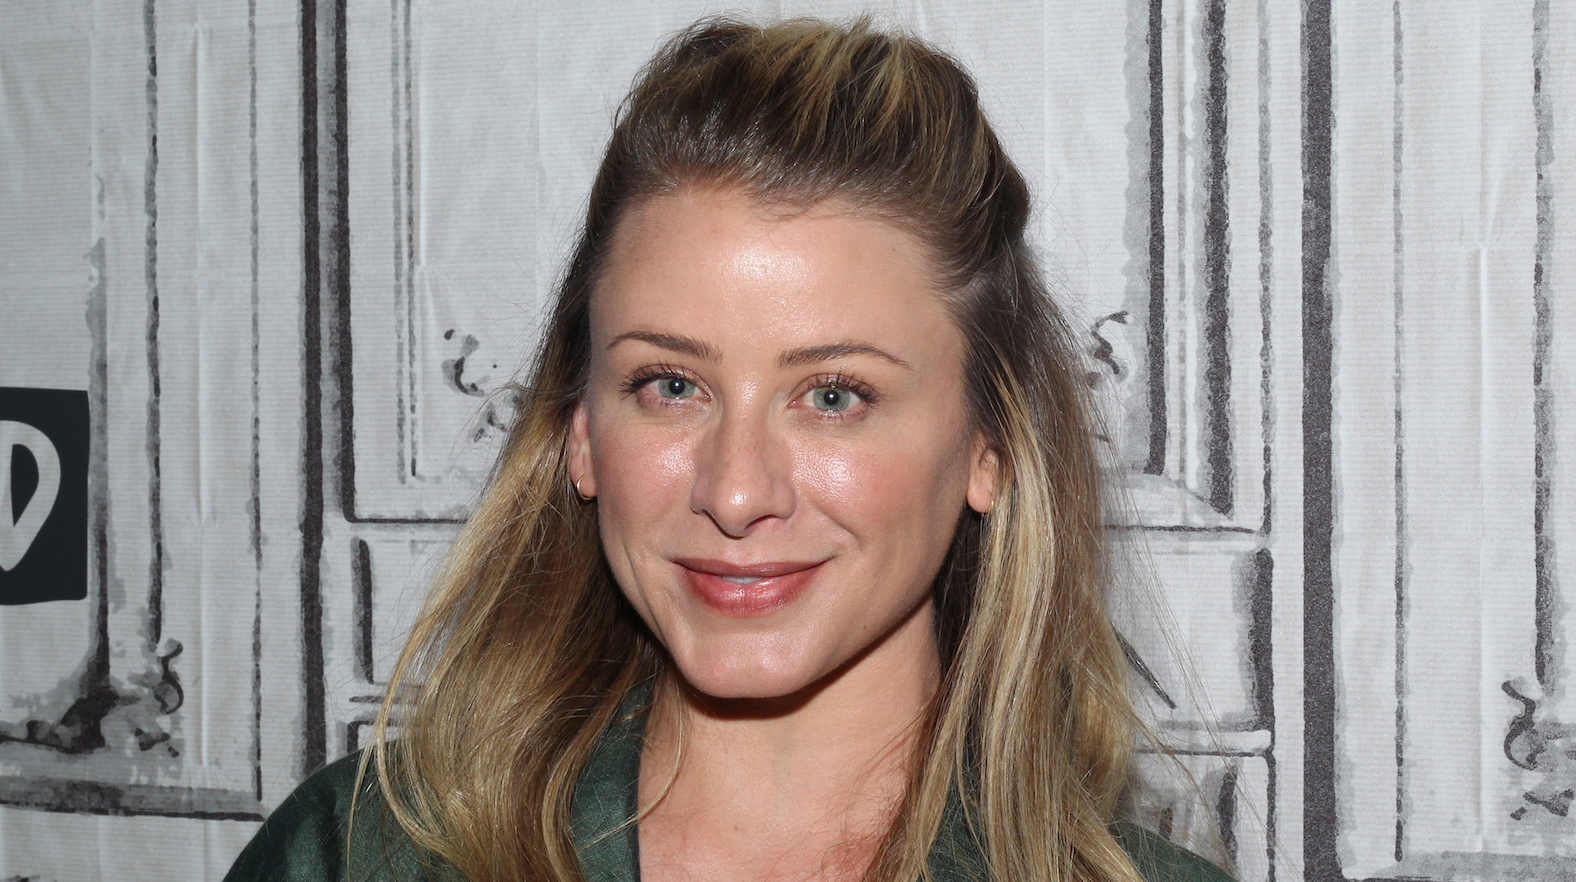 Is Lo Bosworth On The Hills Star Felt Hesitant And Said No